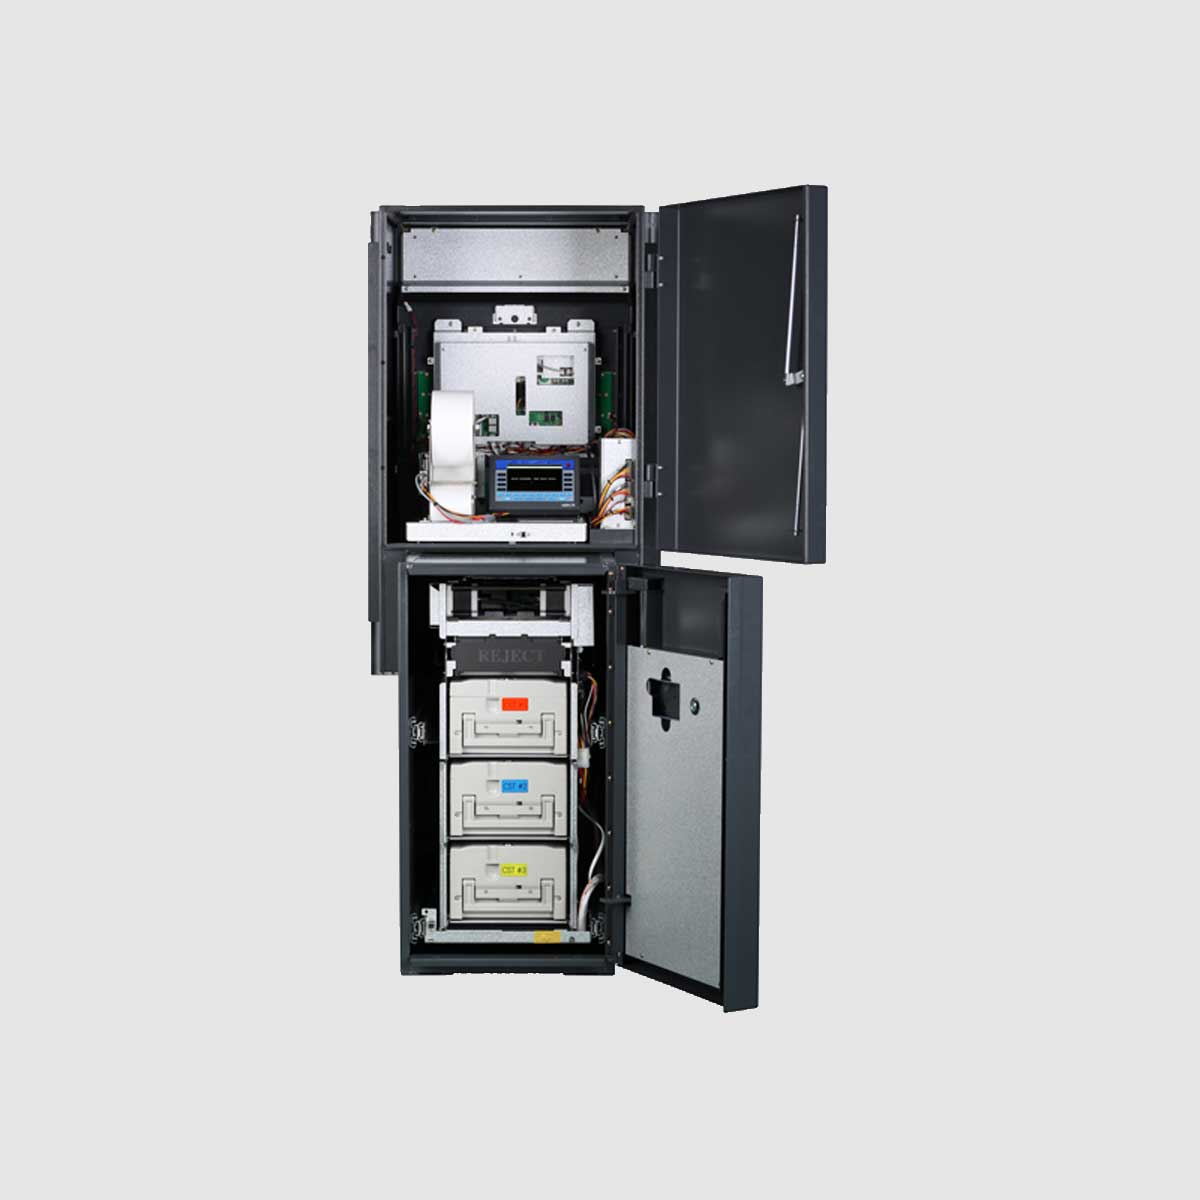 Gm Financial Leasing >> Genmega GT5000 ATM Machine - Empire ATM Group